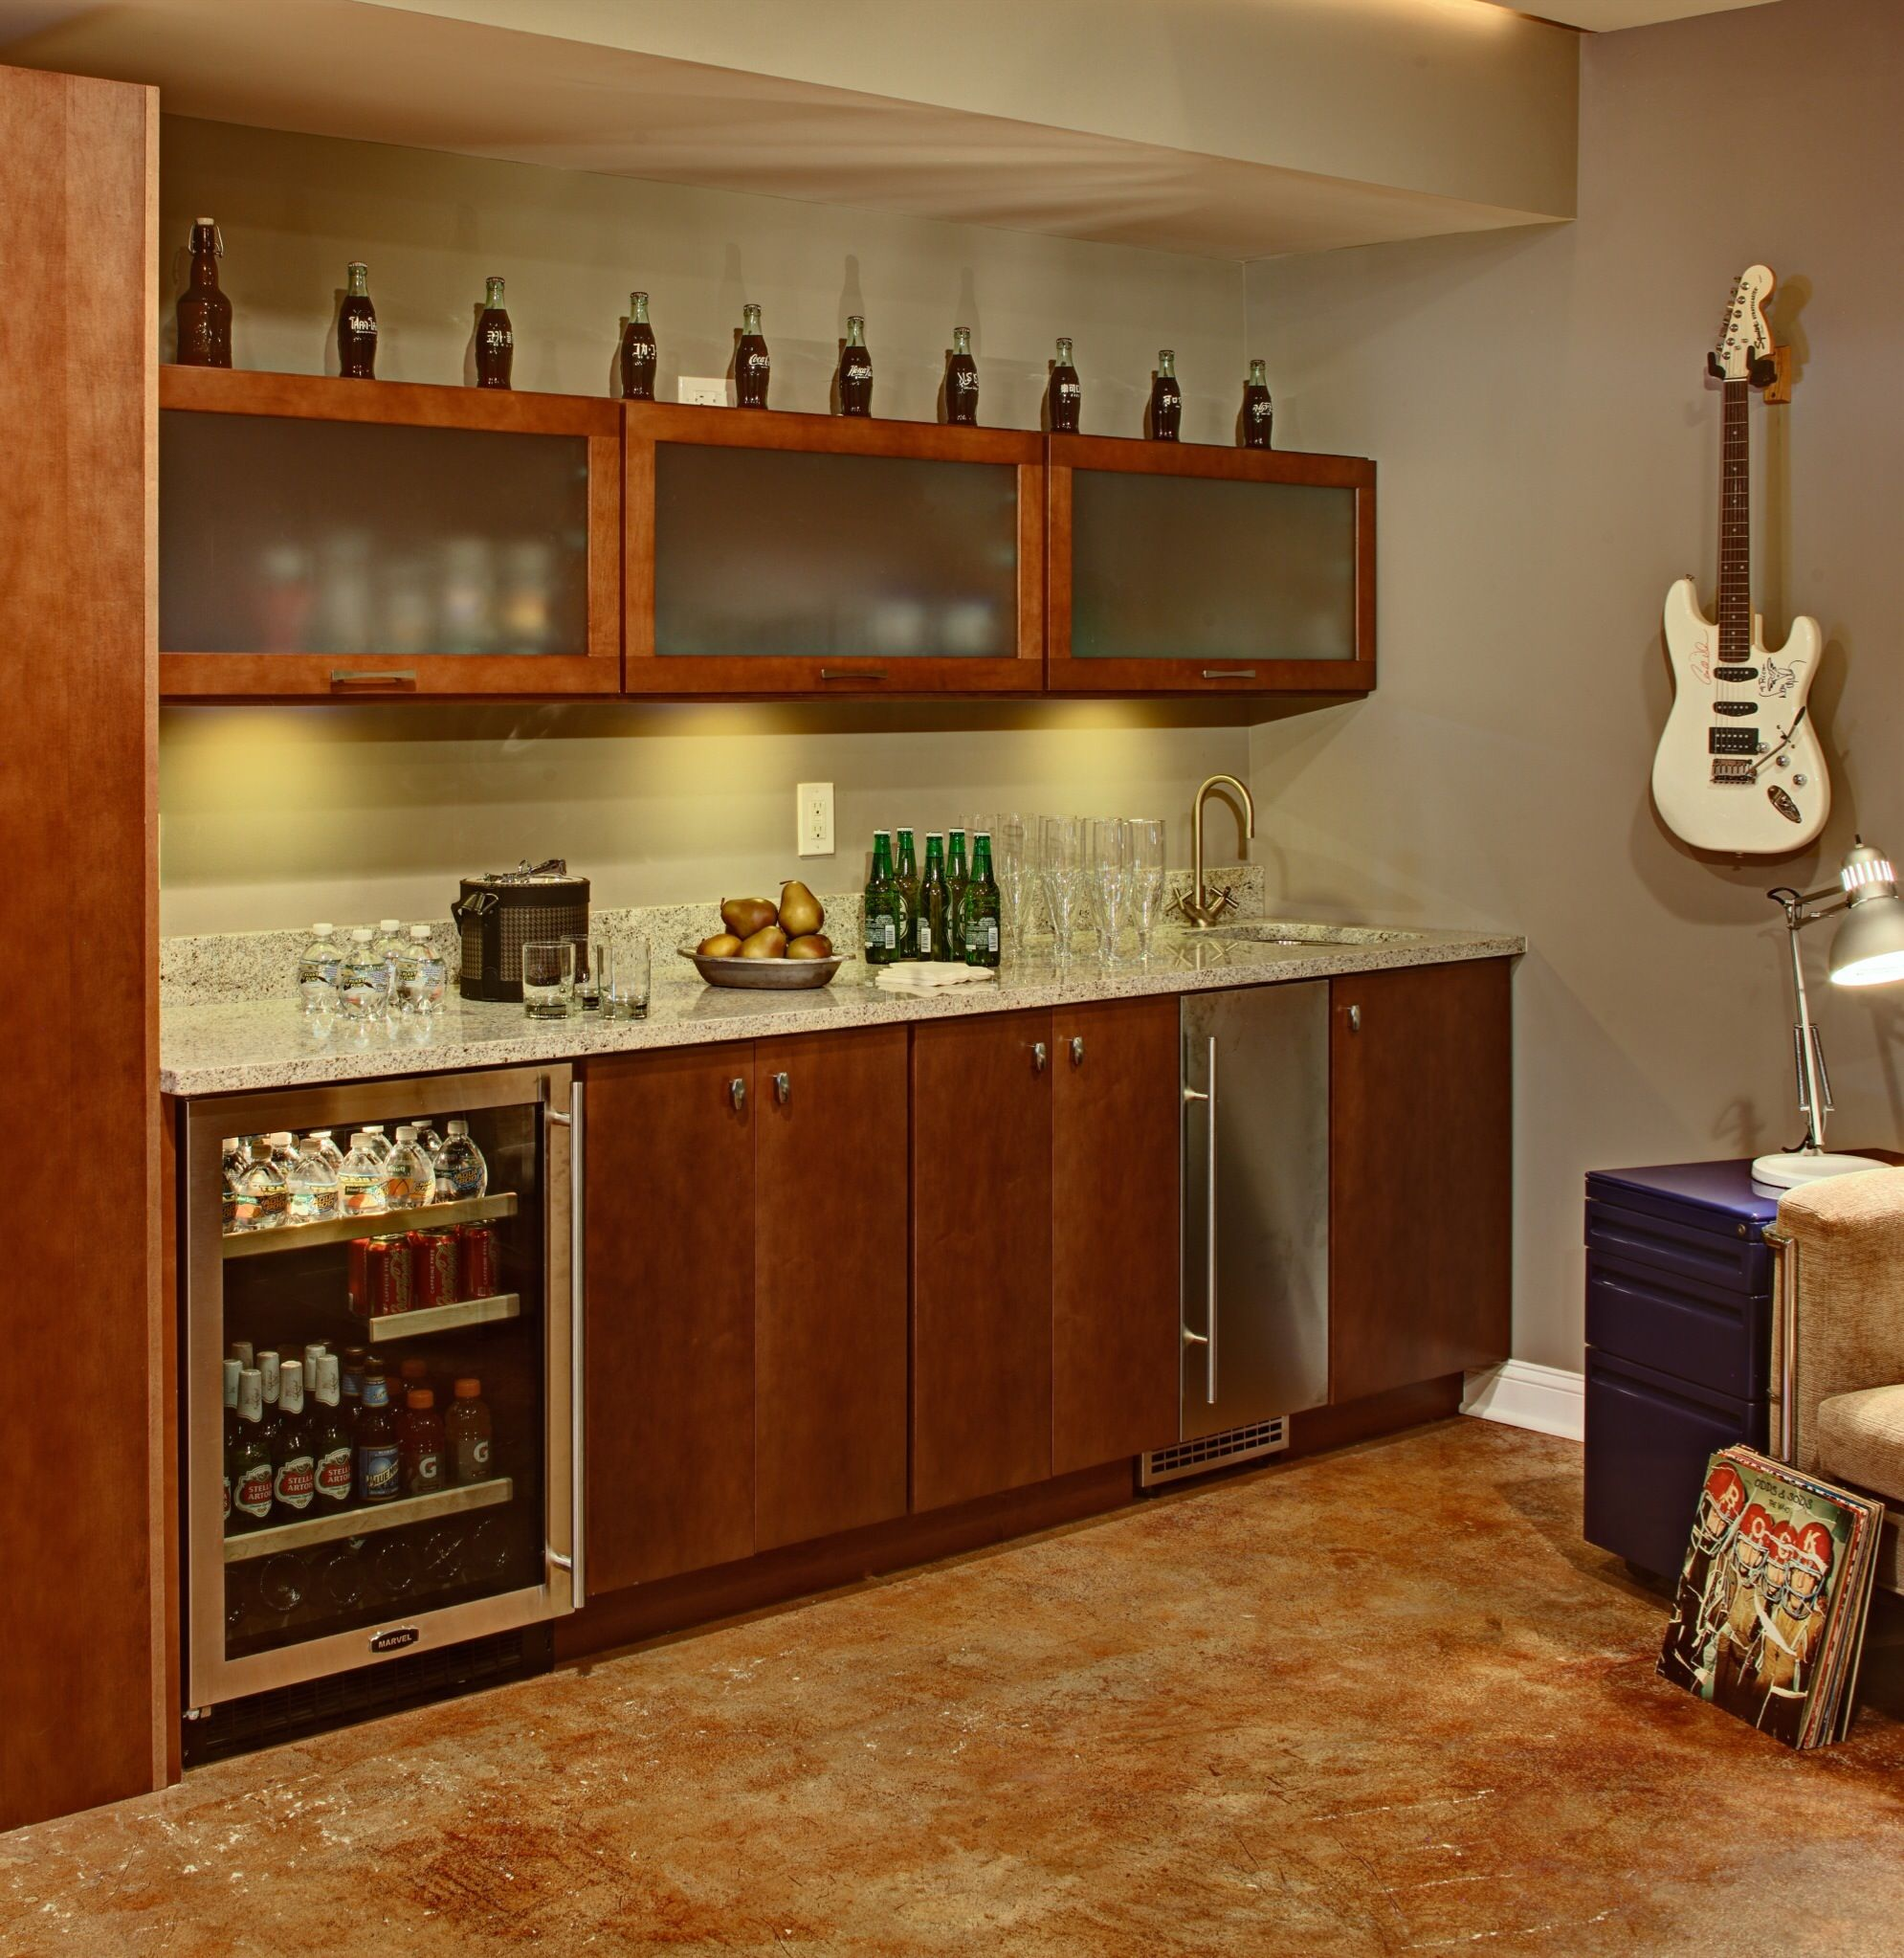 Reclaimed Retroed Cost Effective Cabinet System Installed To Create Functional Bat Wet Bar